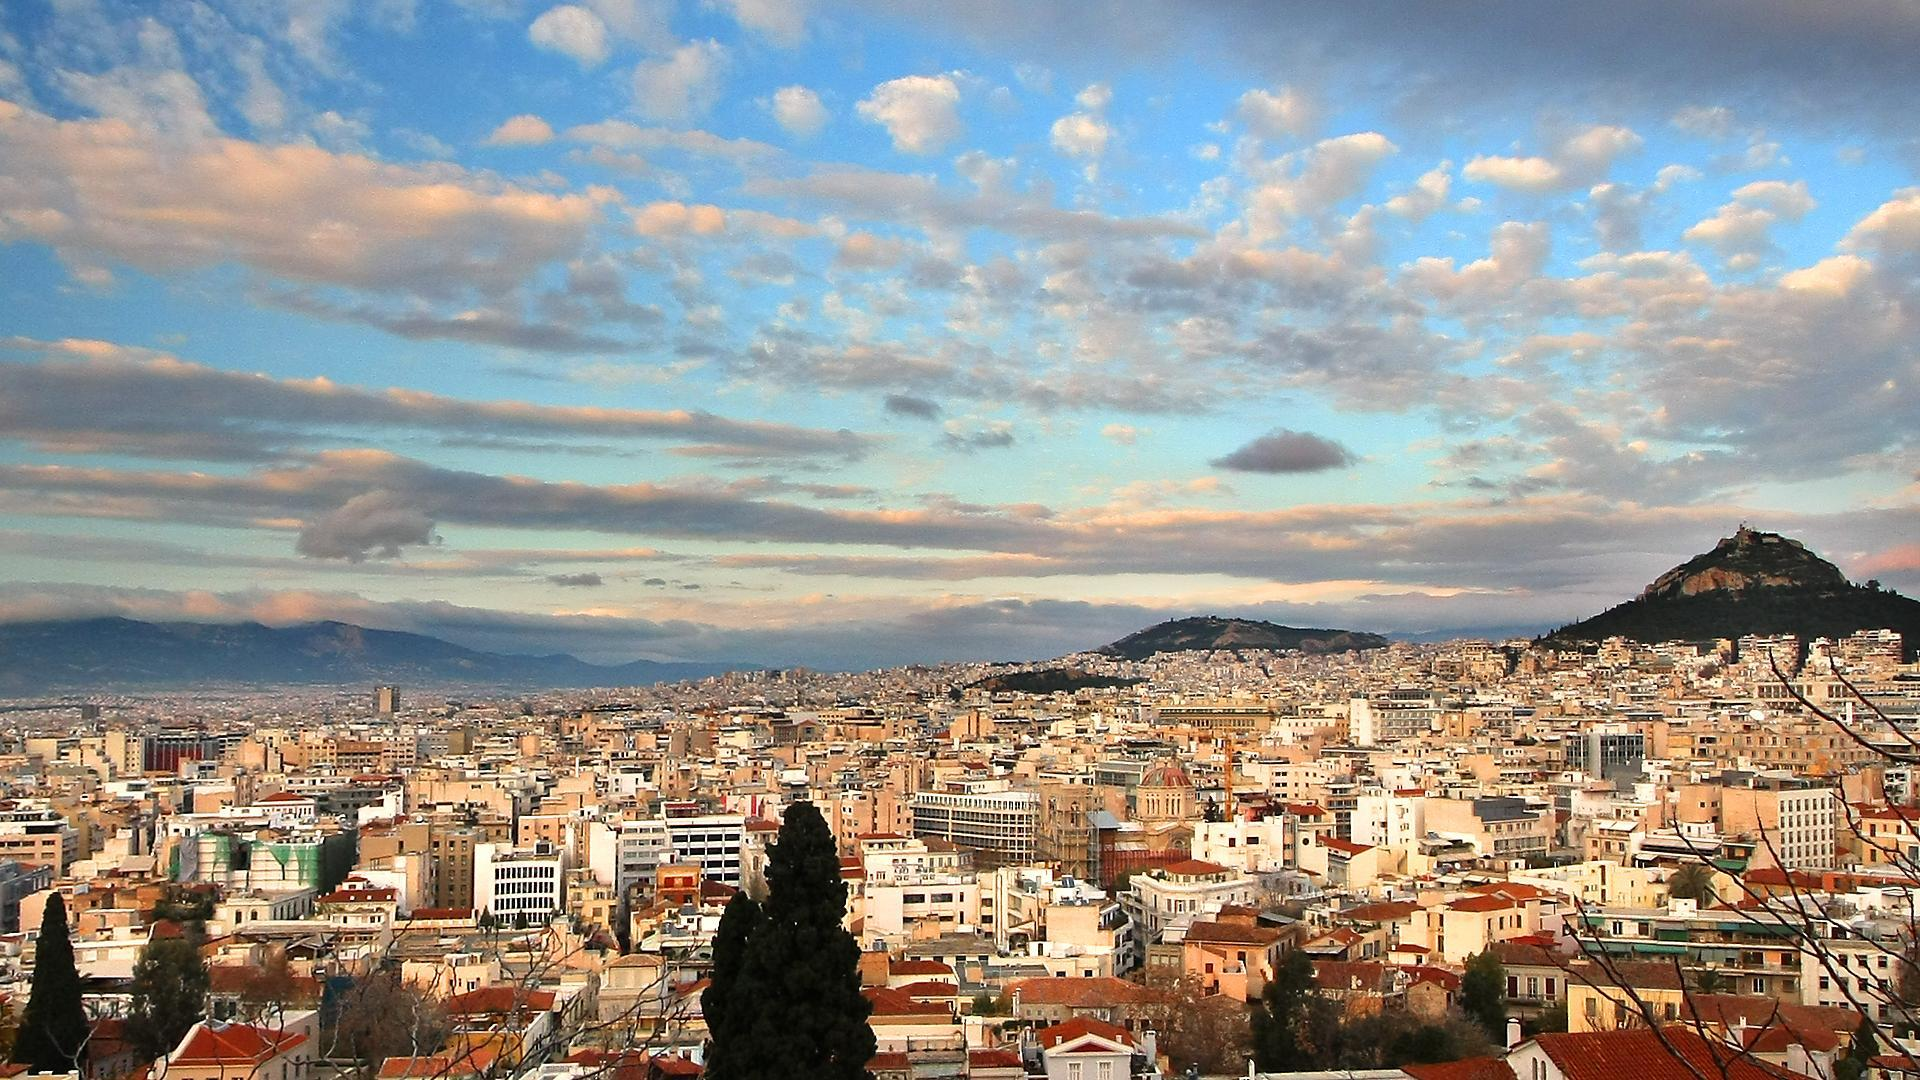 WallpaperMISC - Athens HD Wallpapers Free TOP High Quality Desktop ...